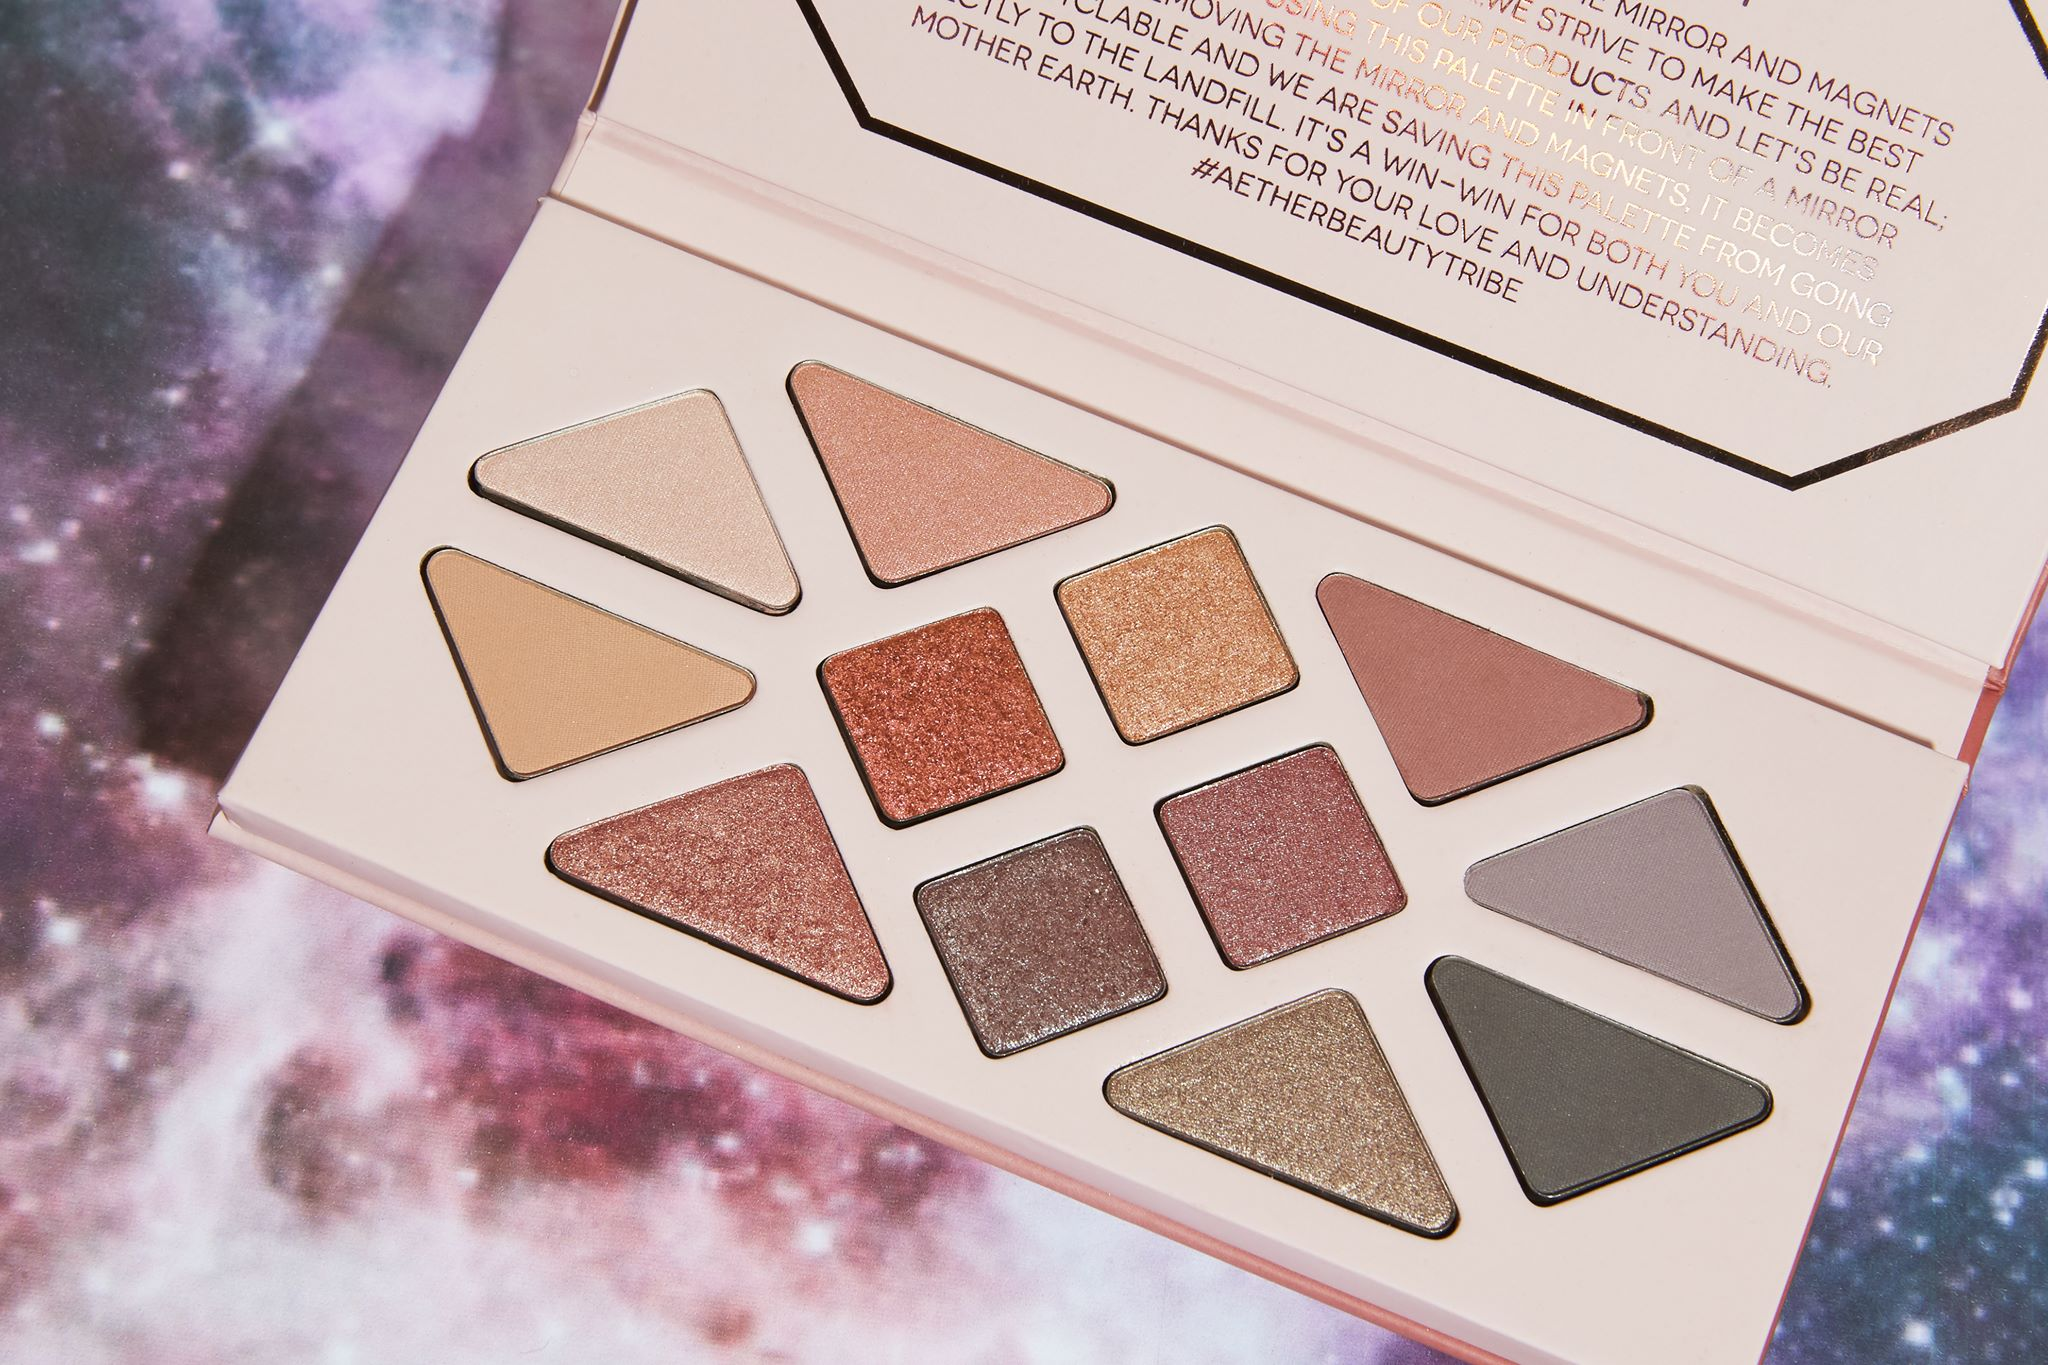 Aether Beauty Co., gemstone, makeup, eyeshadow, palette, eyes, cosmetics, sustainable, recyclable, beauty